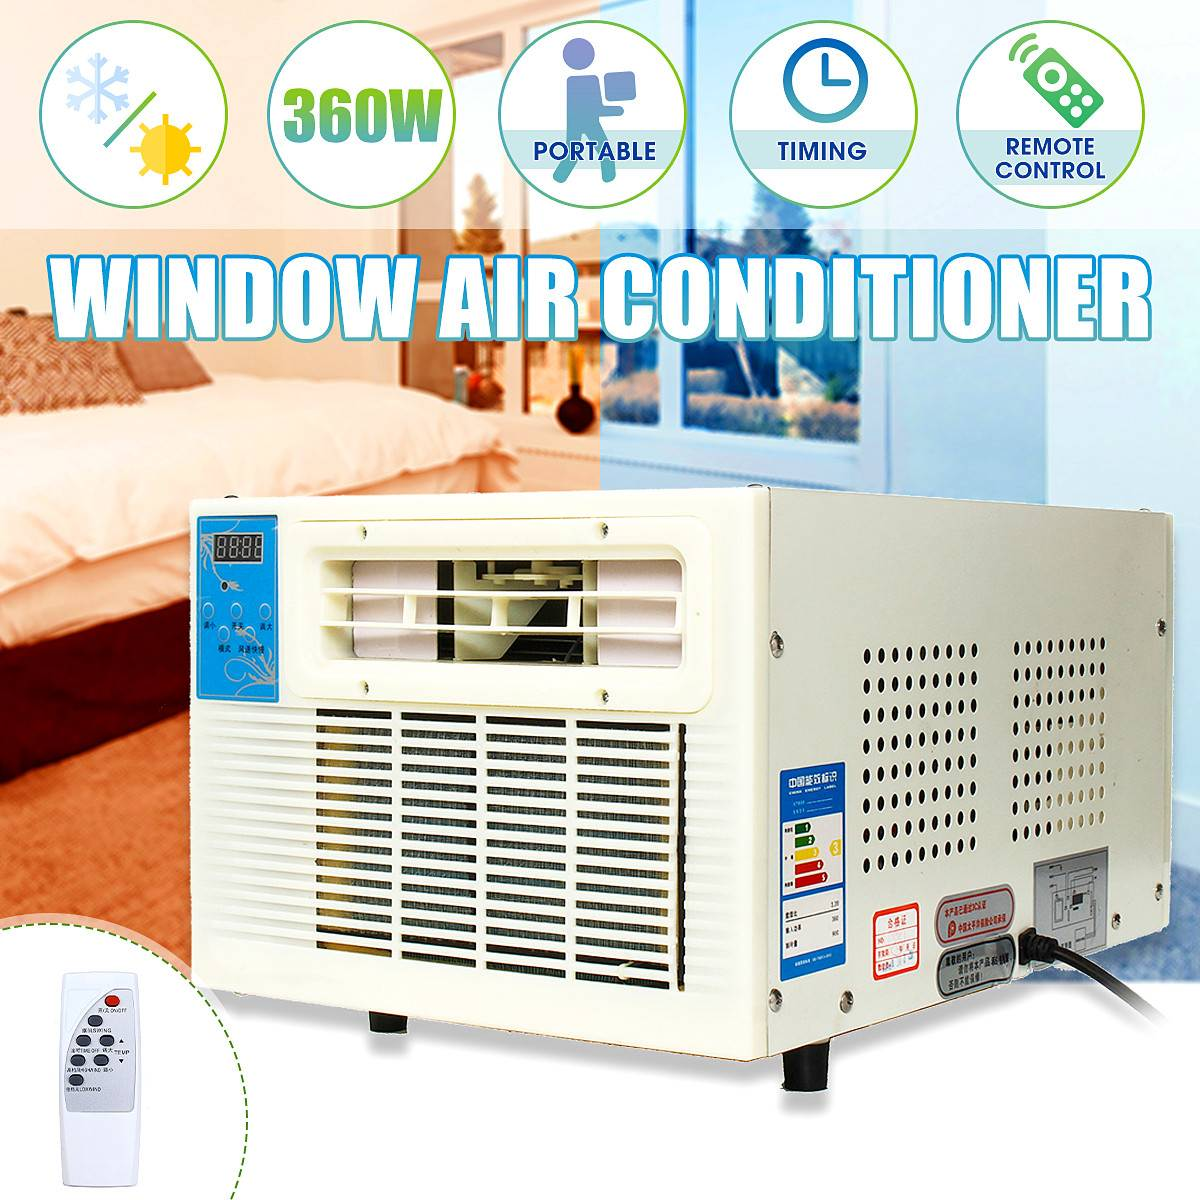 Mini 900W 3072 BTU Cold/Heat 220V Portable Heater Air Conditioner Window Air Conditioner Cooling Heating DehumidificationMini 900W 3072 BTU Cold/Heat 220V Portable Heater Air Conditioner Window Air Conditioner Cooling Heating Dehumidification